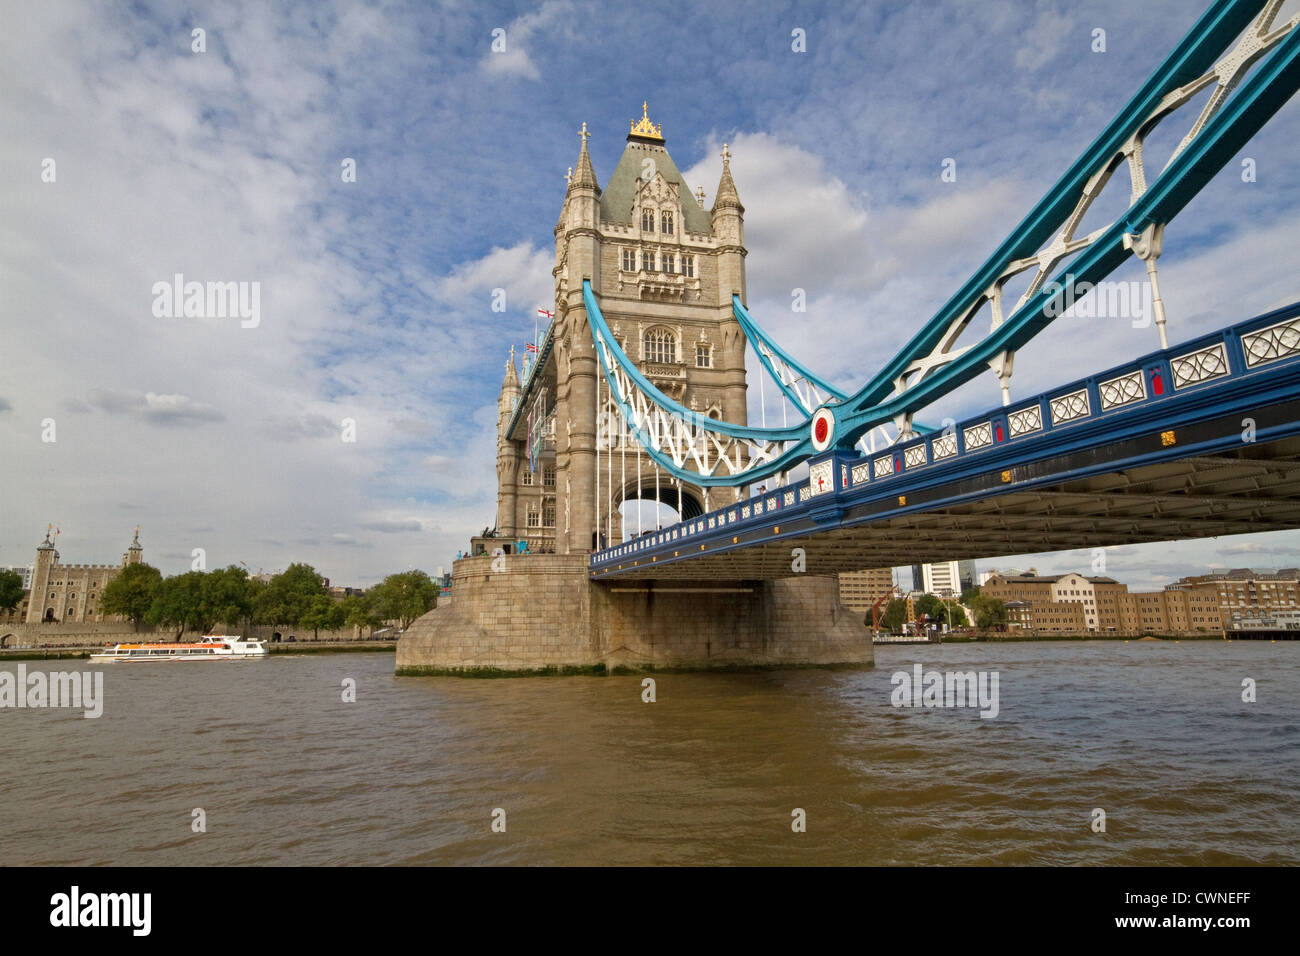 Tower Bridge in London which crosses the River Thames and opens to allow larger ships pass under it. - Stock Image